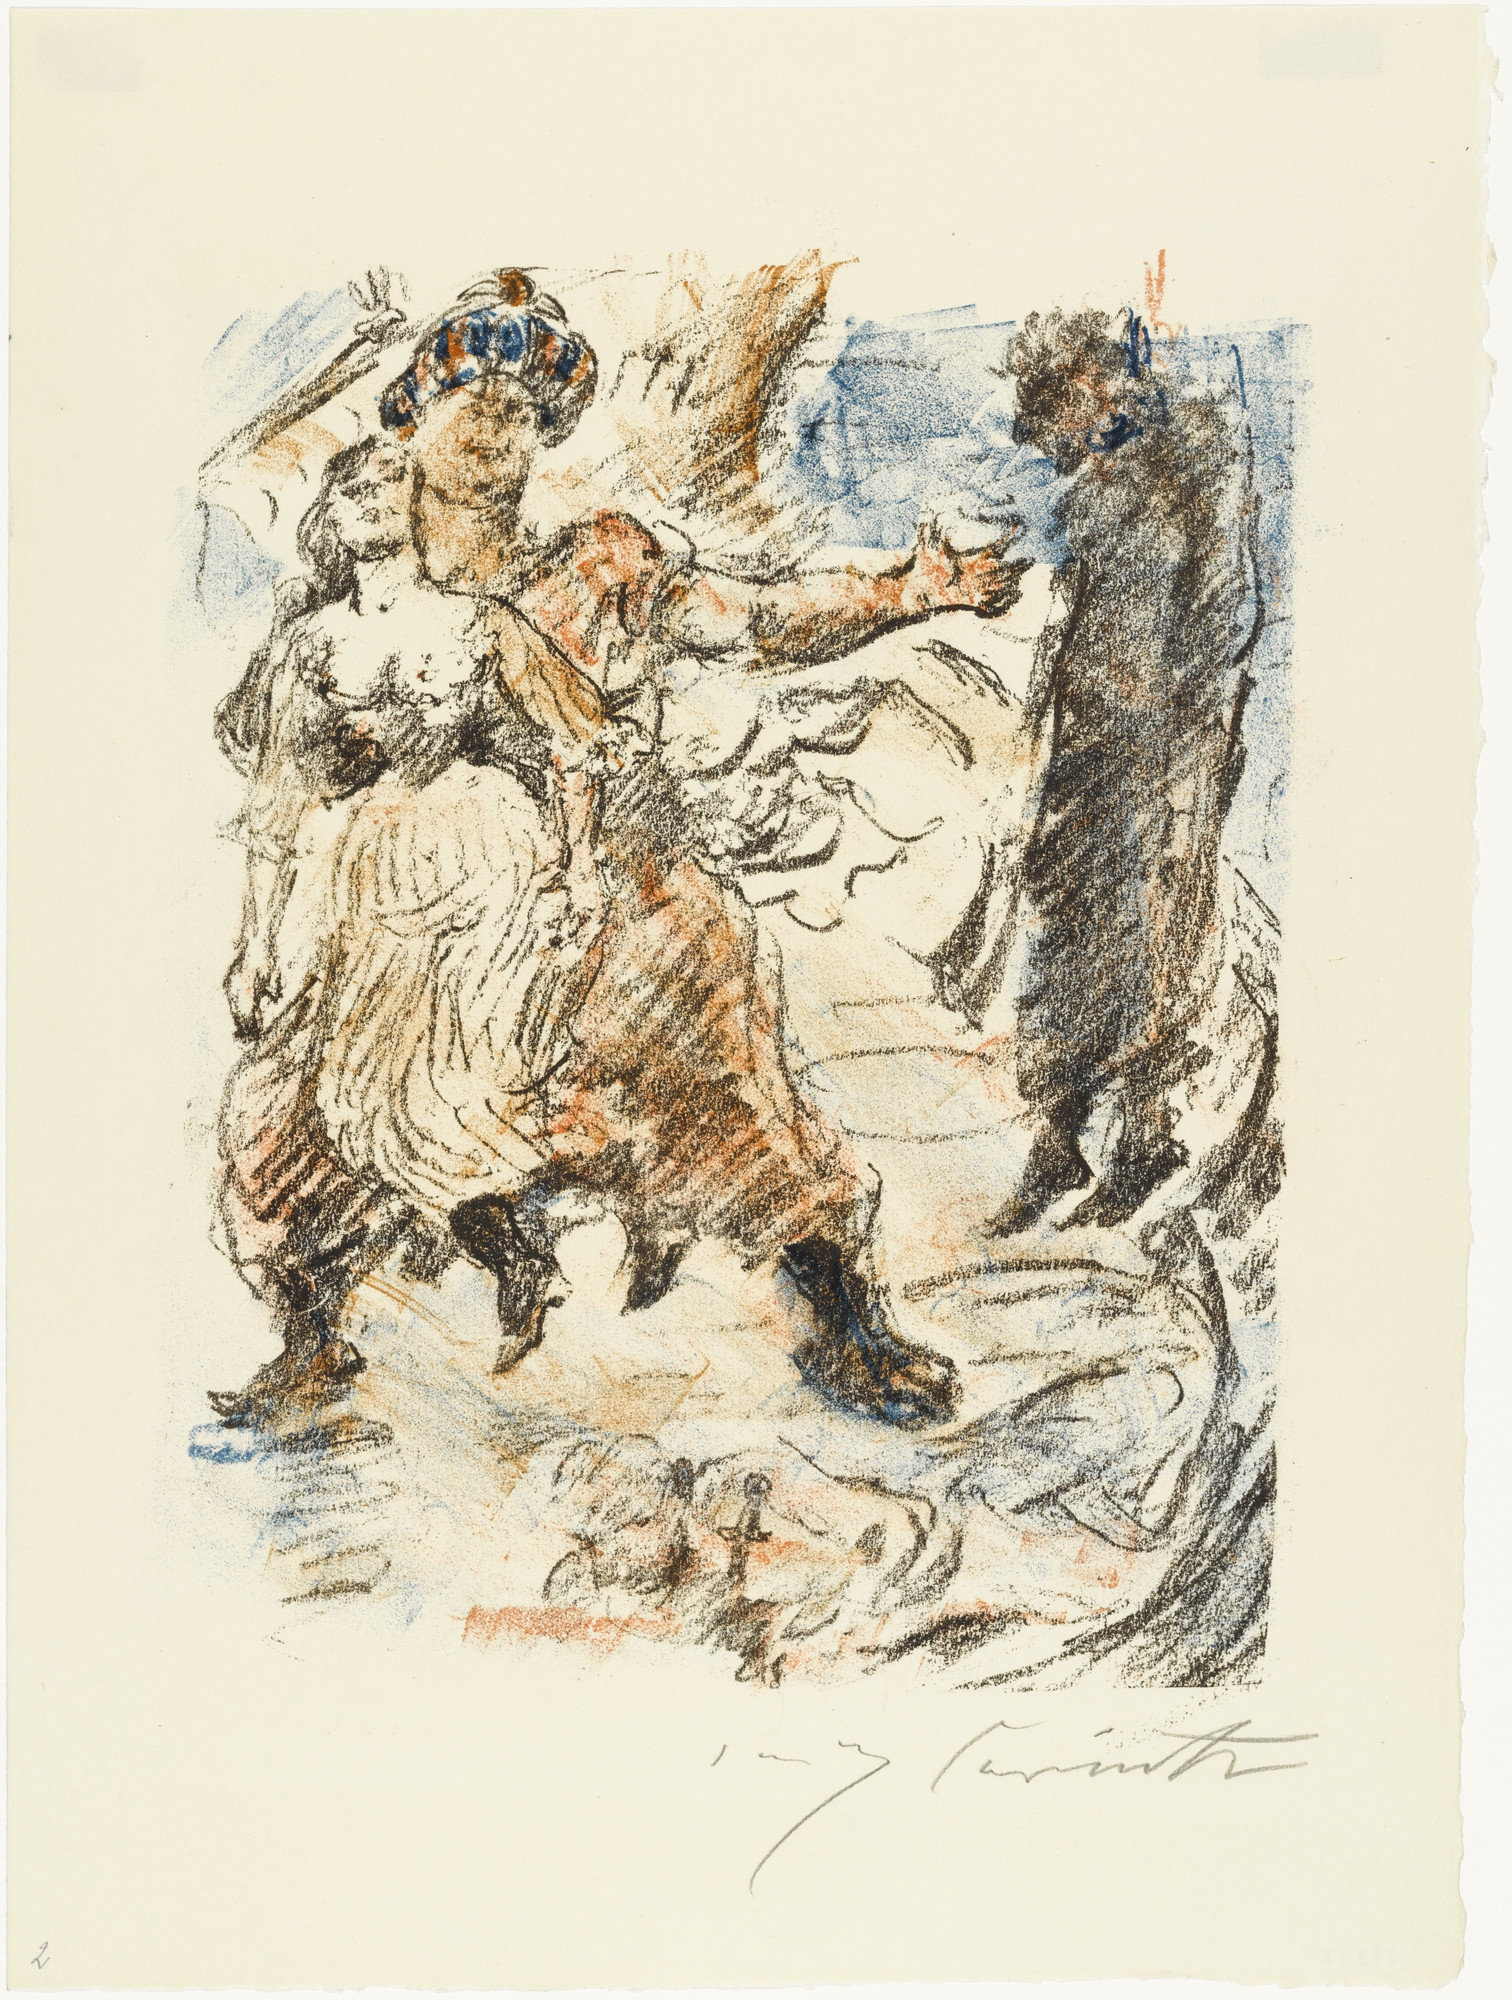 Lovis Corinth. Aline Falls into the Hands of Corsairs (Aline fällt in die Hand der Korsaren) from The Queen of Golconda (Die Königin von Golkonde). (1920/21)